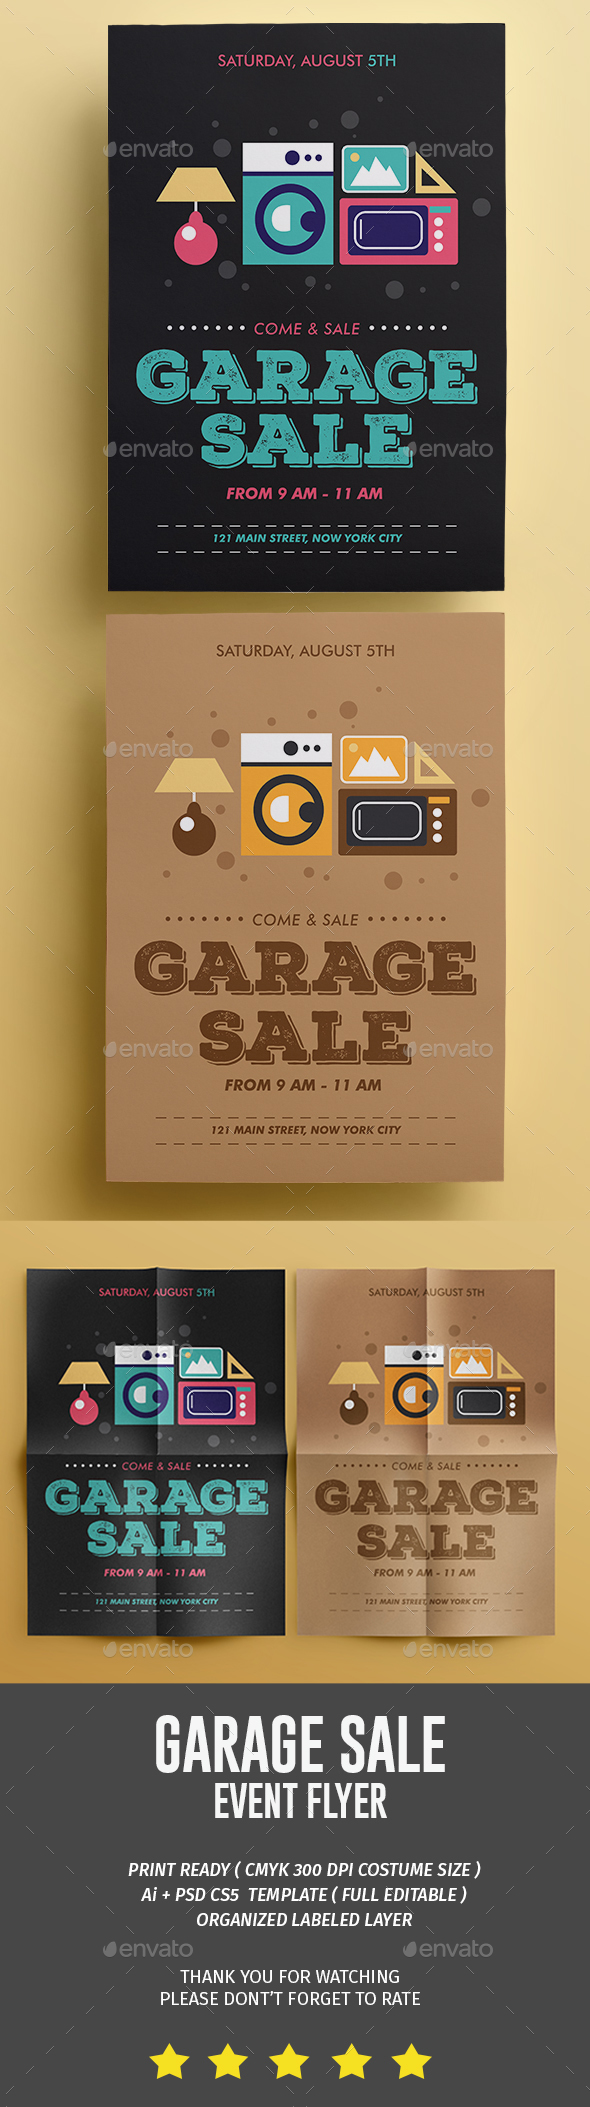 Garage Sale Flyer | PD YGYB | Pinterest | Ventas y Bazares